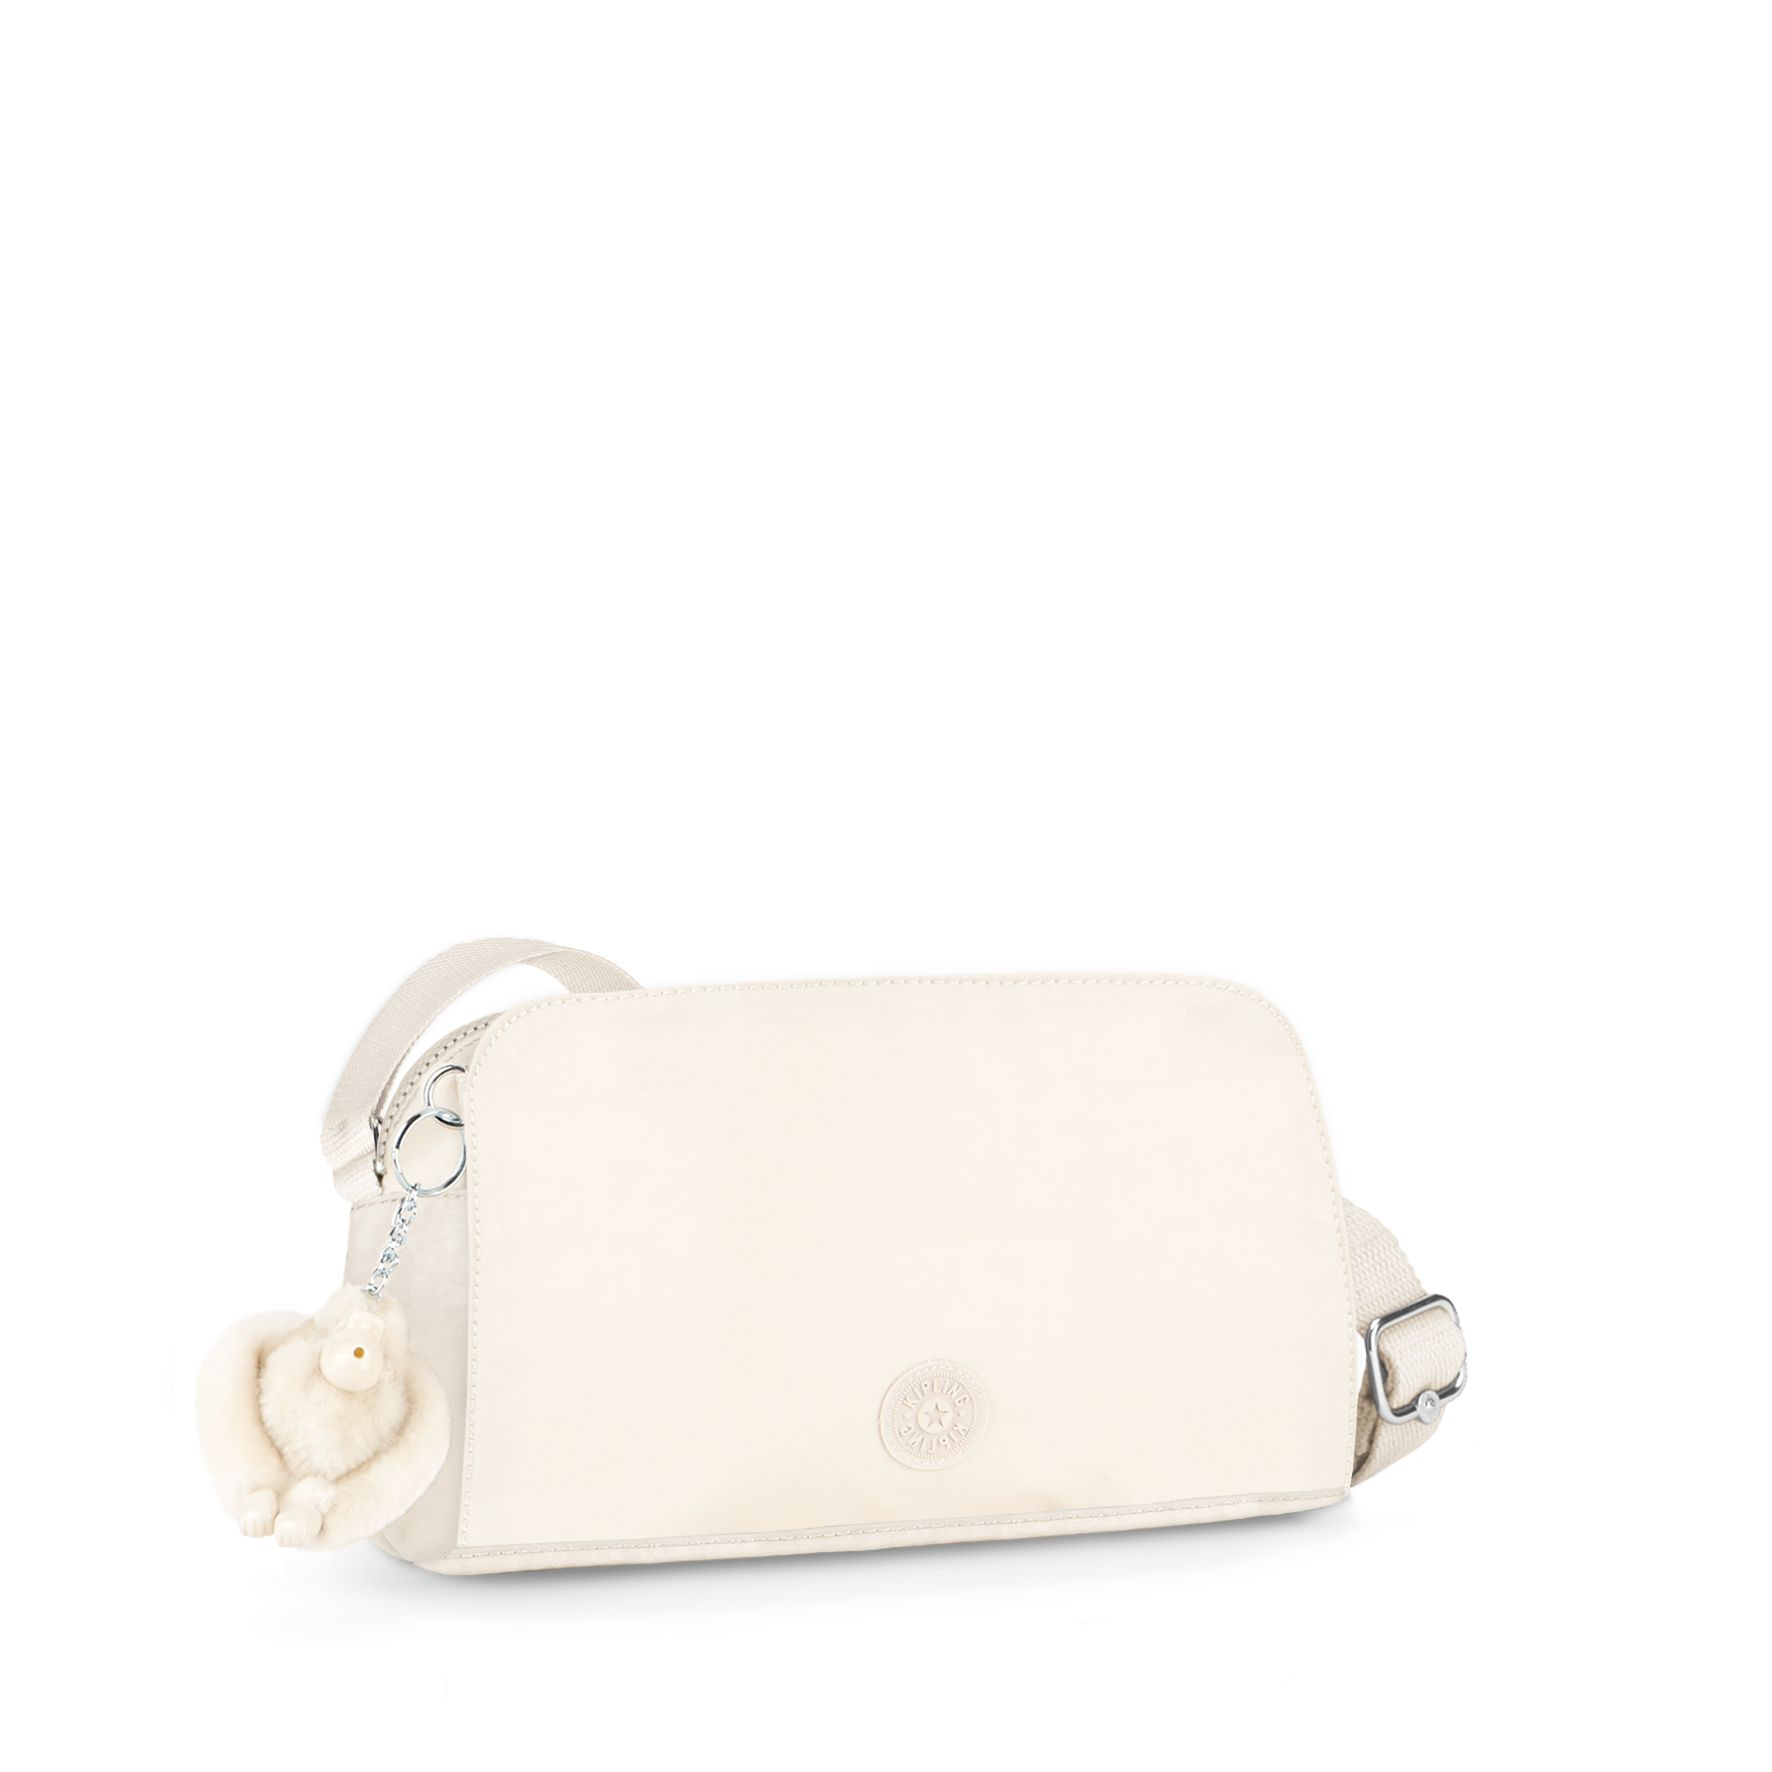 Keila shoulder bag